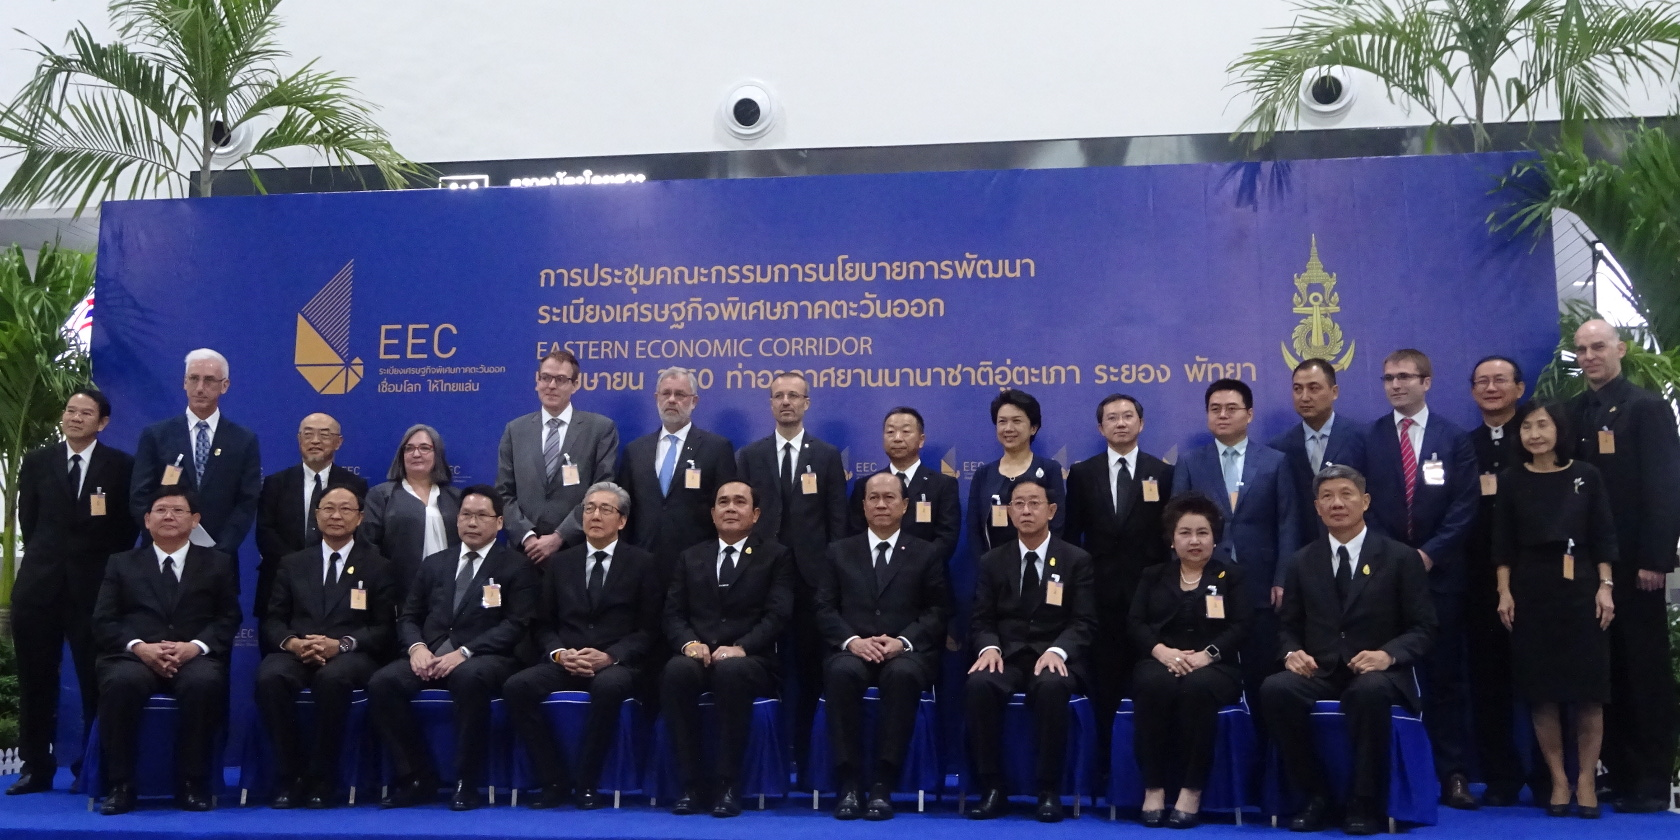 Thai Government Moves Full Steam Ahead to Develop Eastern Economic Corridor